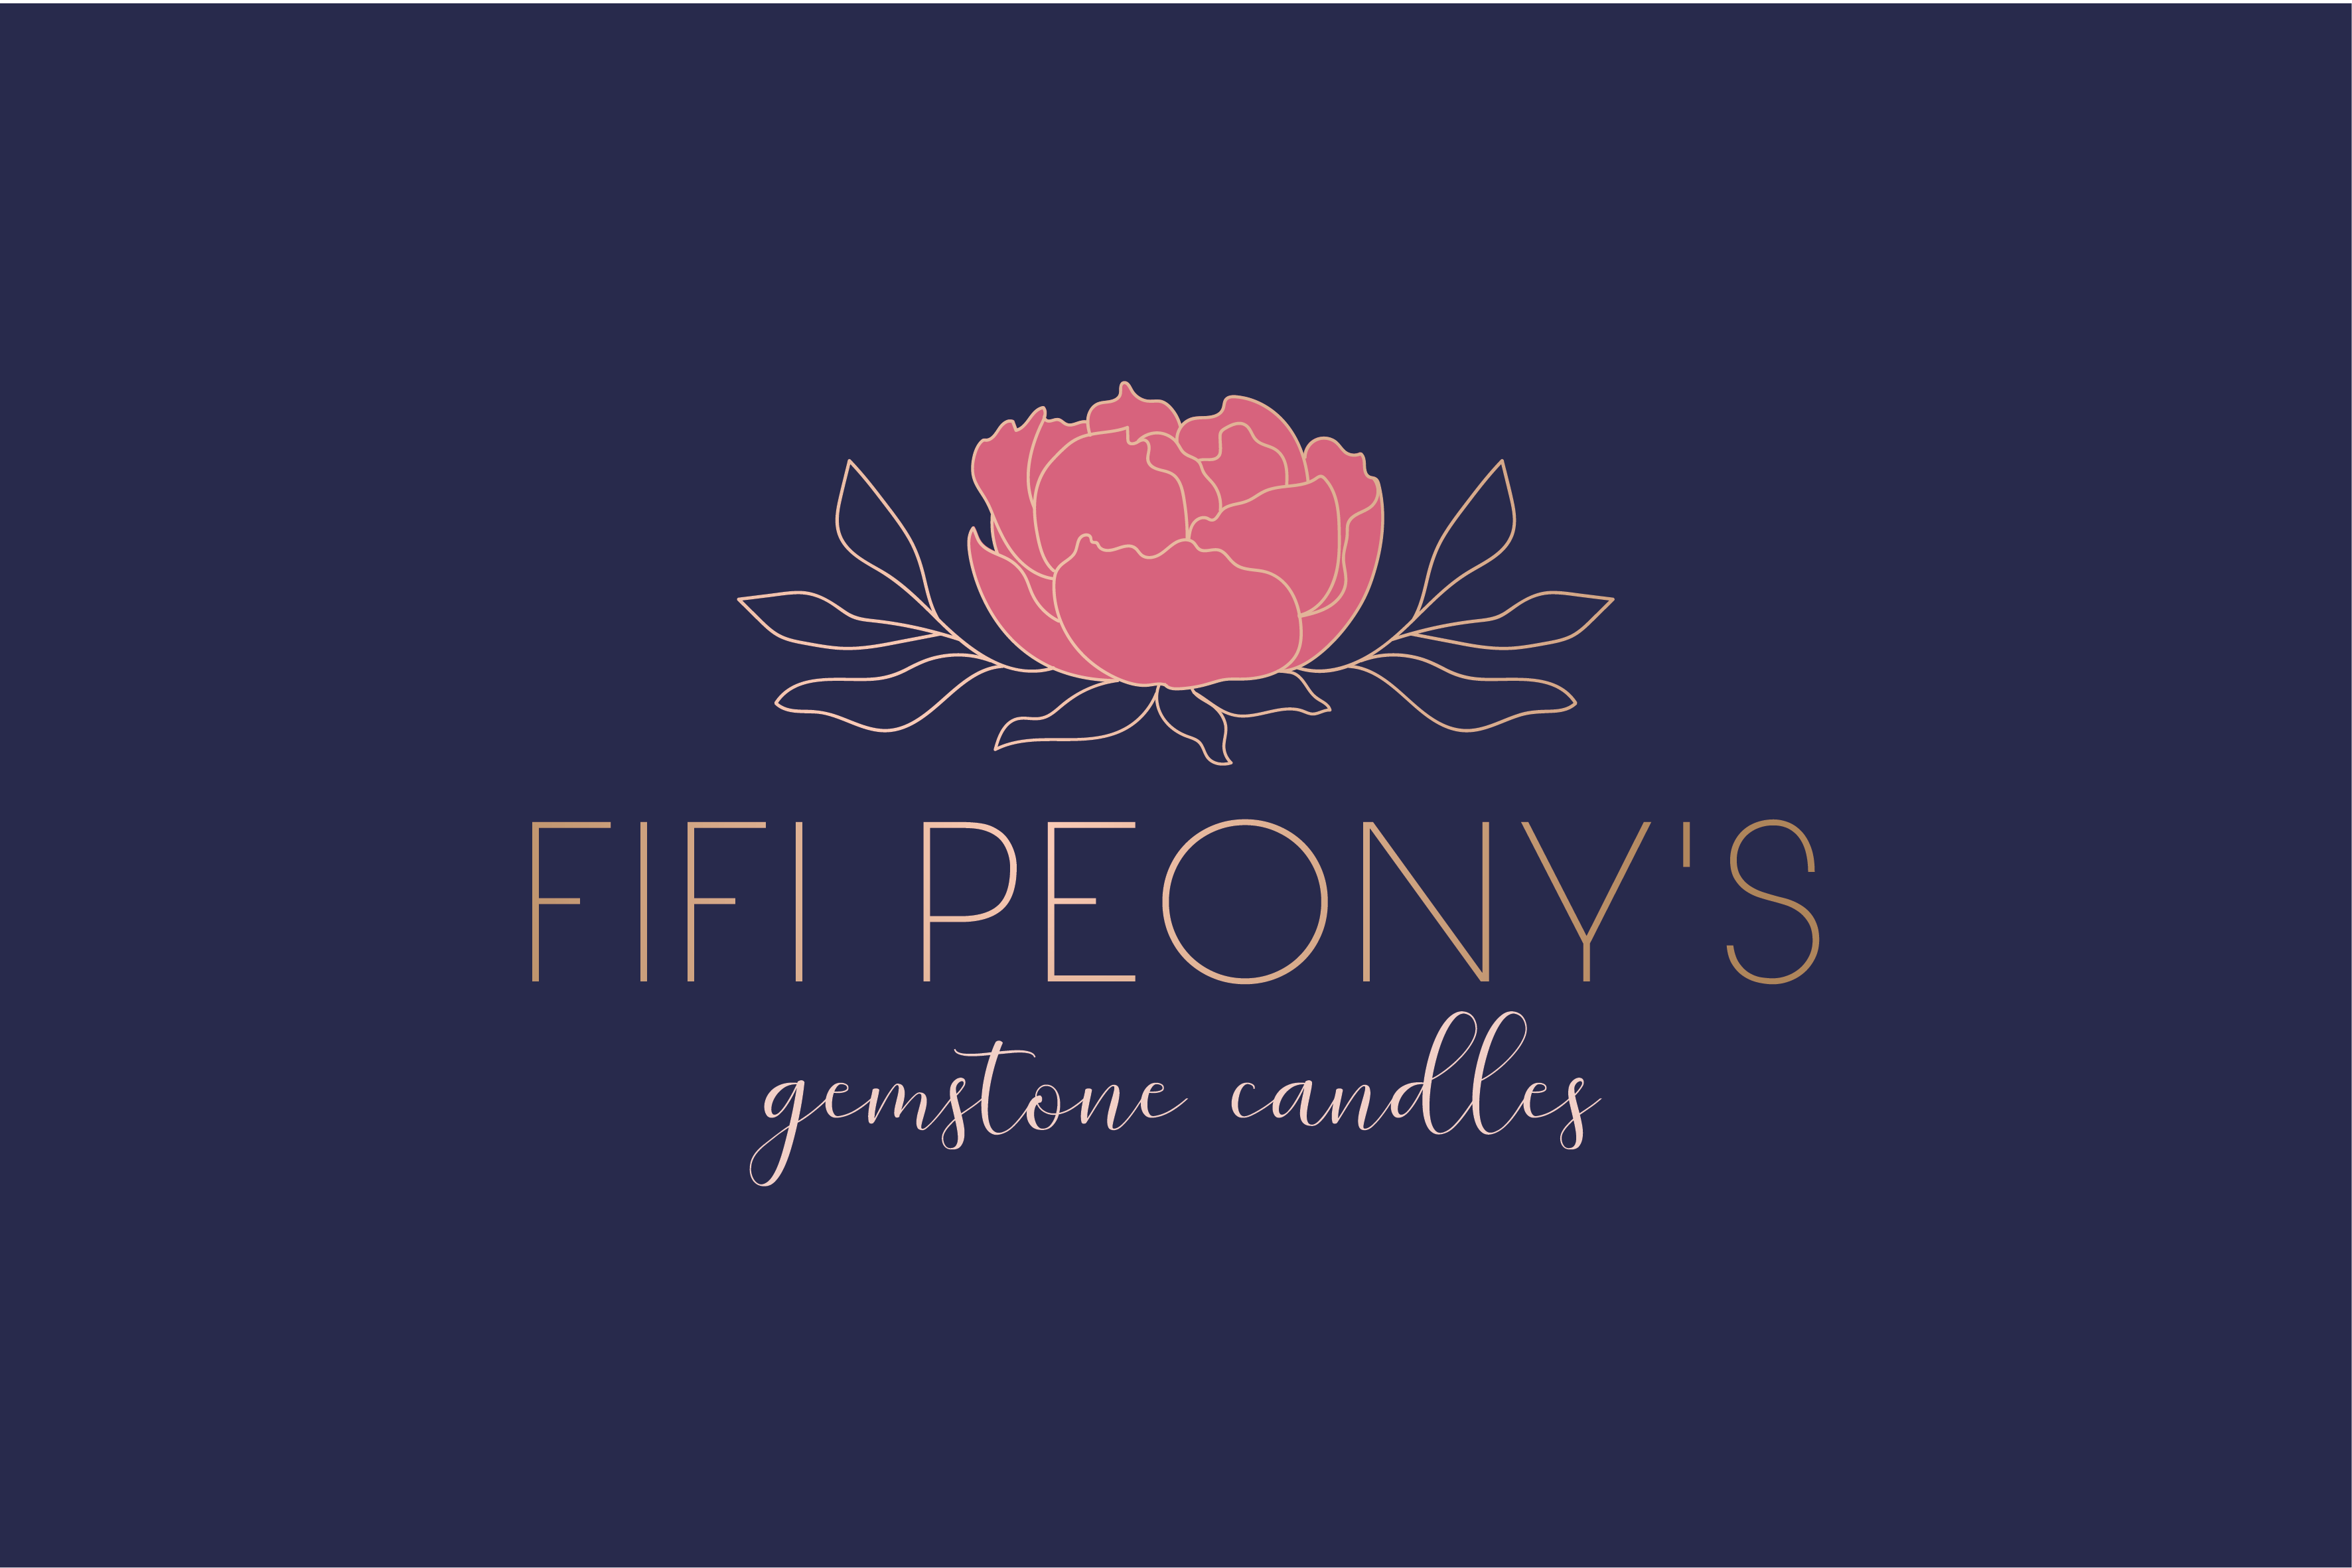 Beautiful feminine logo for luxury candles that appeal to women